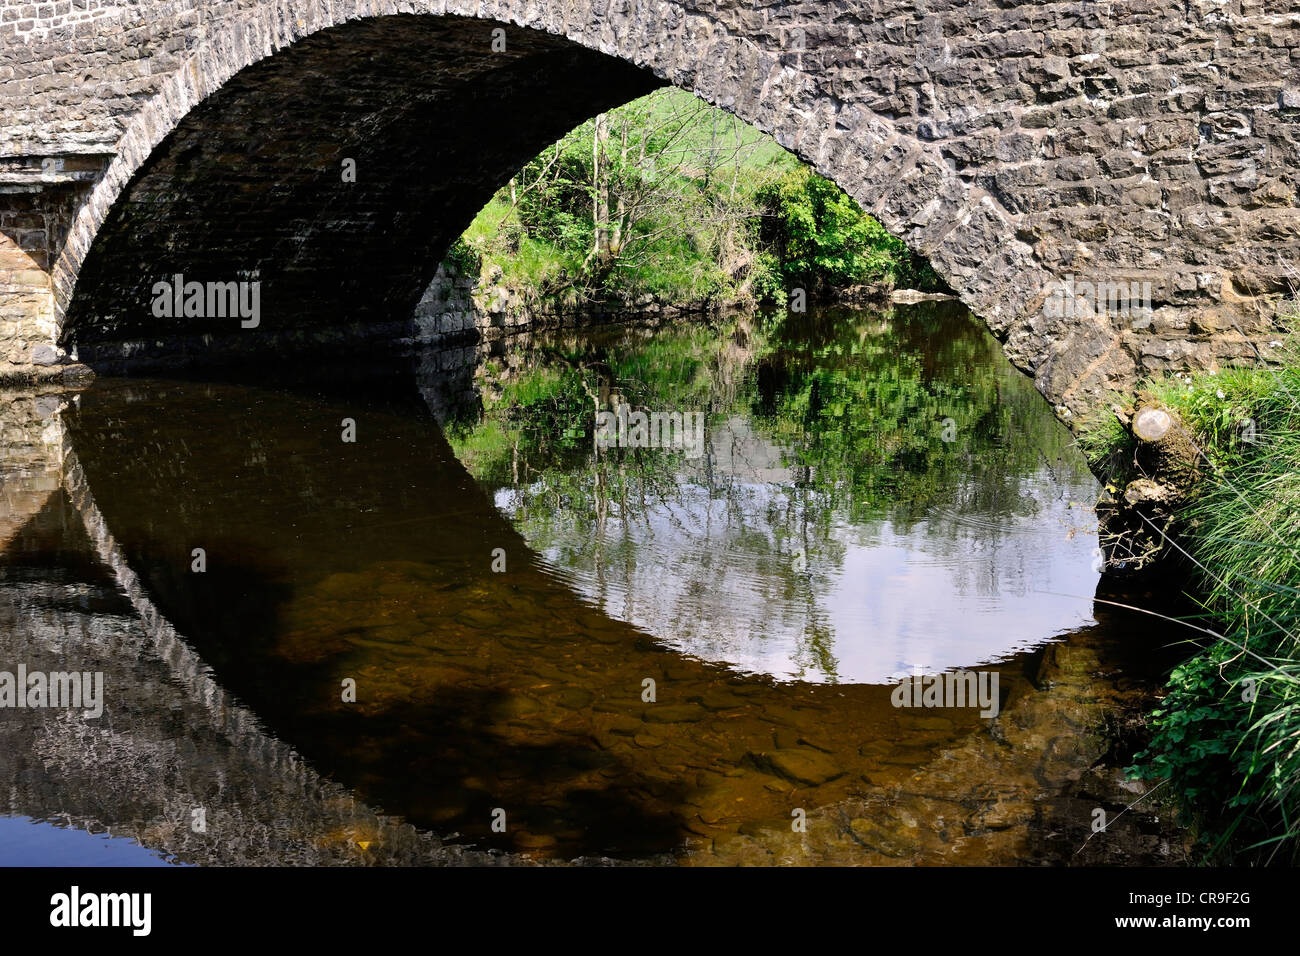 The eighteenth century Barth Bridge, spanning the River Dee, in Dentdale, Cumbria, England - Stock Image